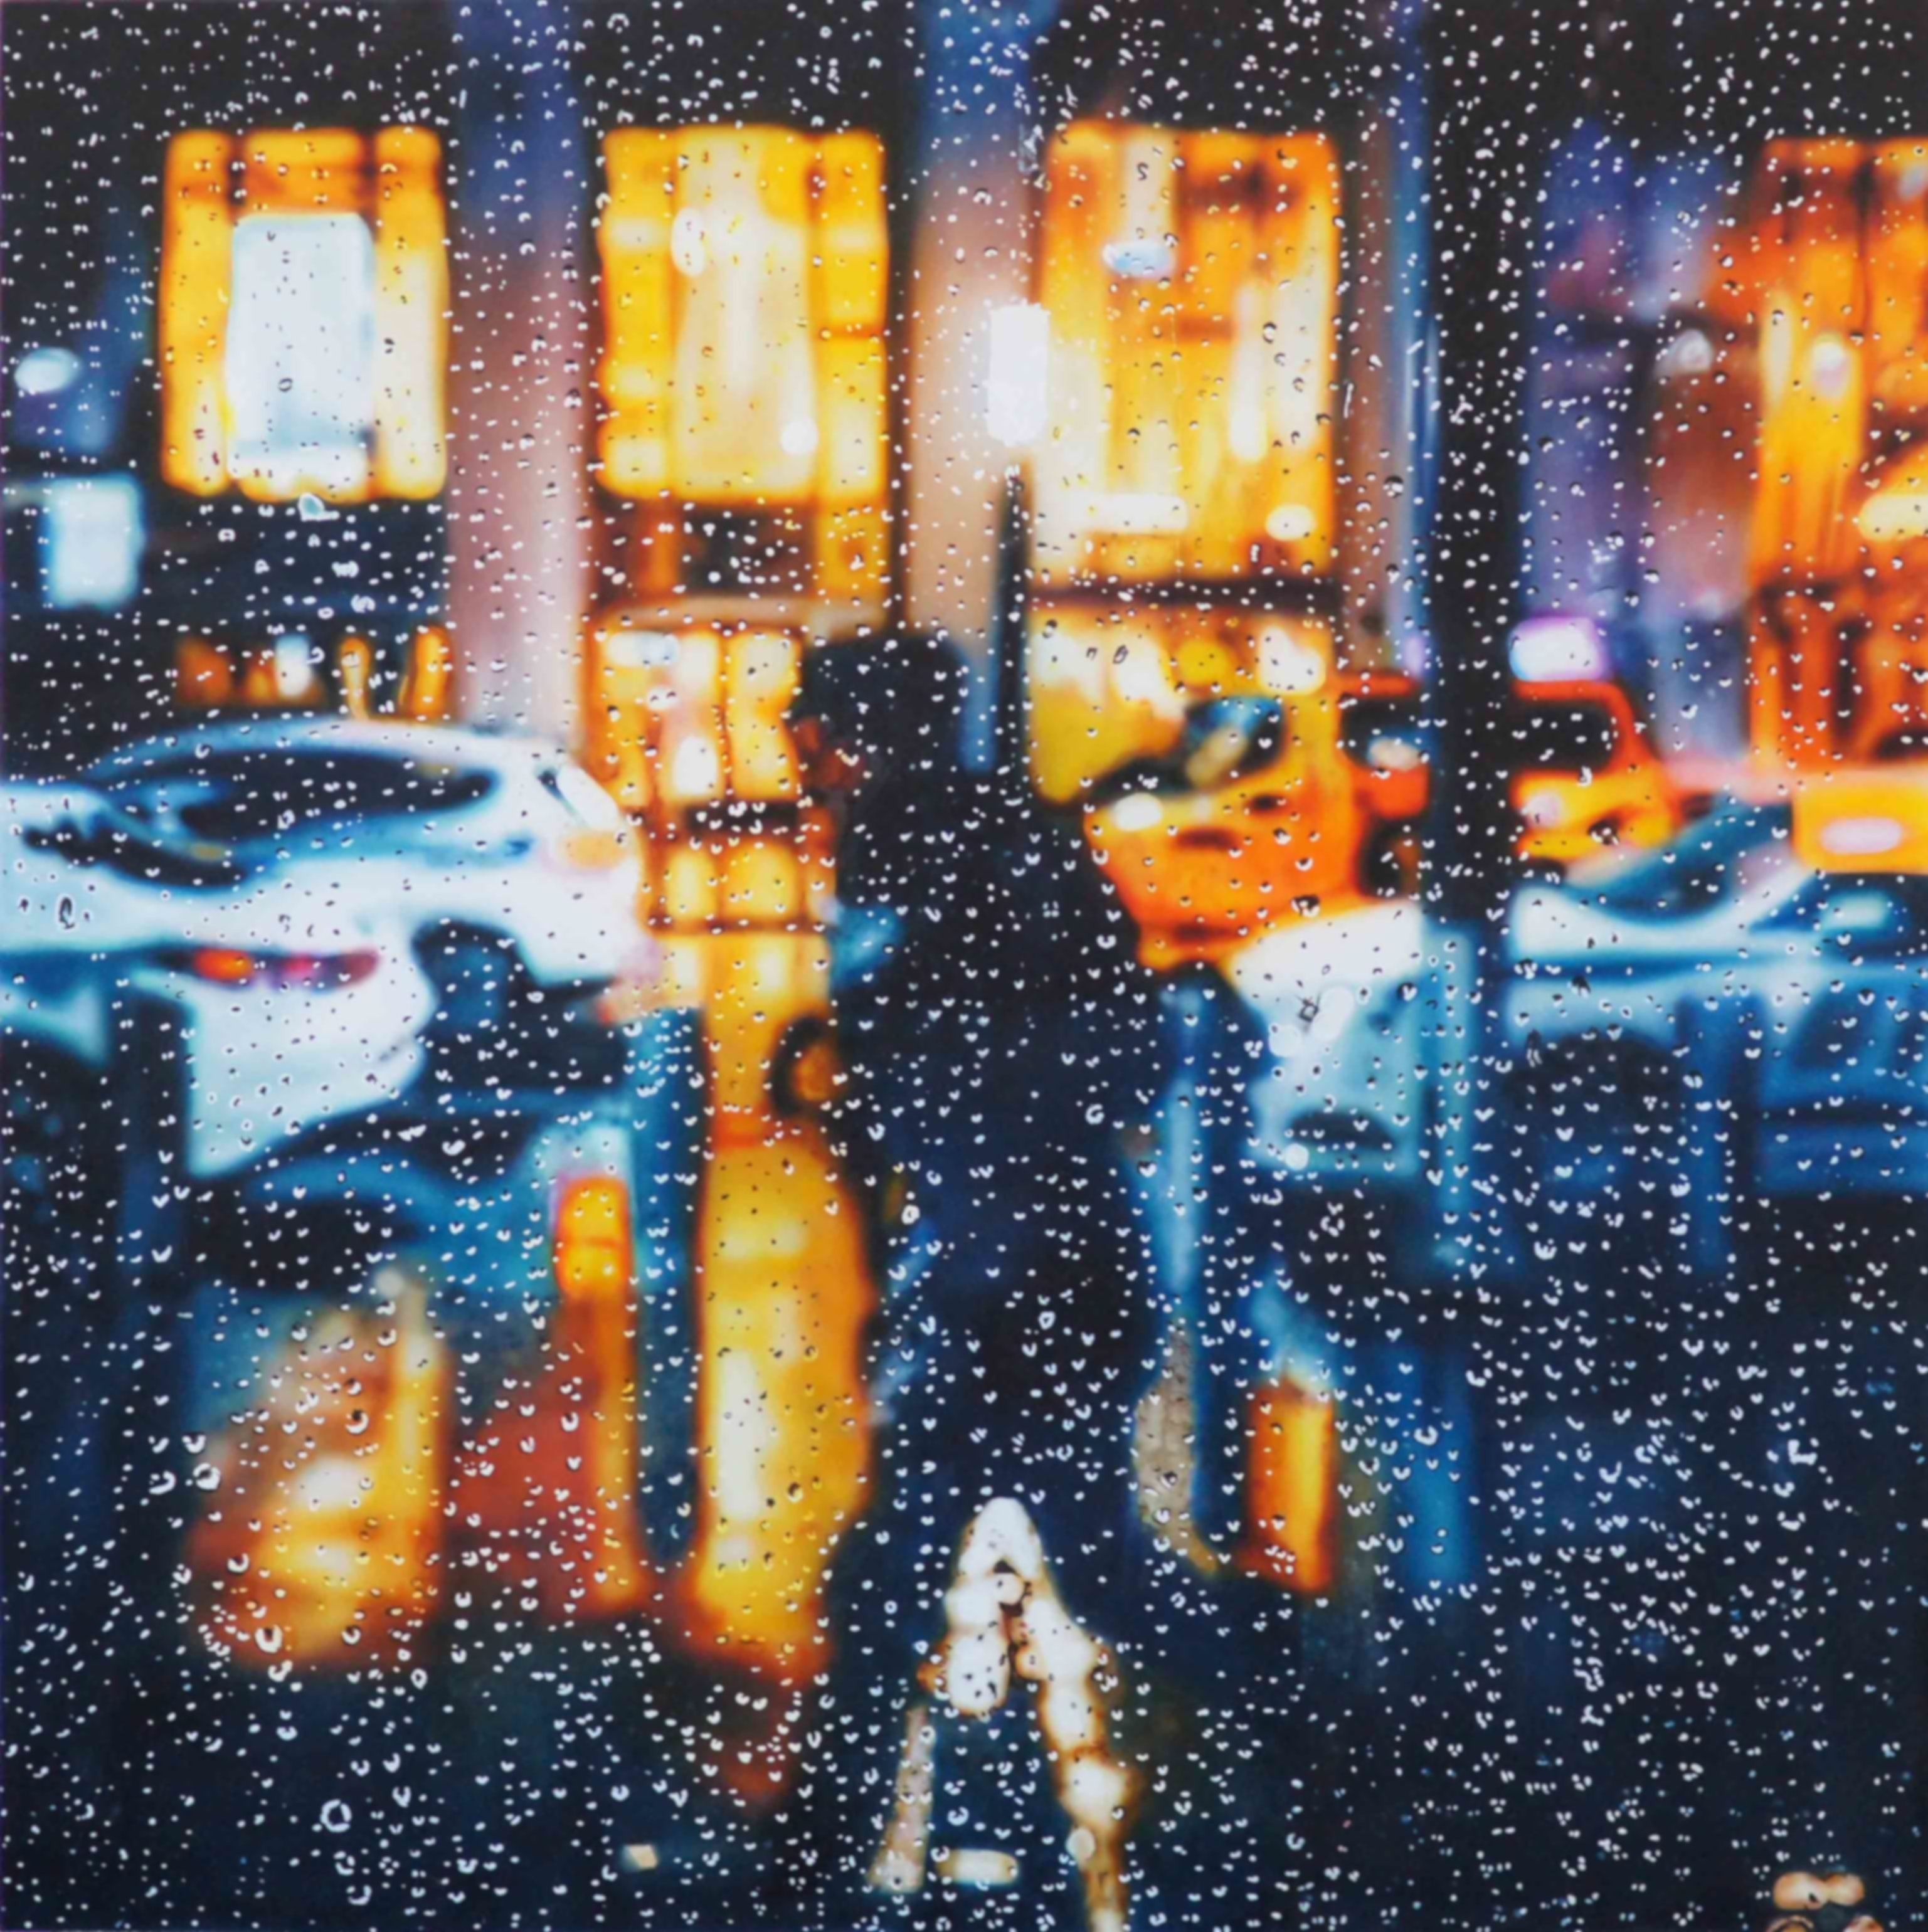 (CreativeWork) Passing Stranger by Todd Simpson. Acrylic Paint. Shop online at Bluethumb.